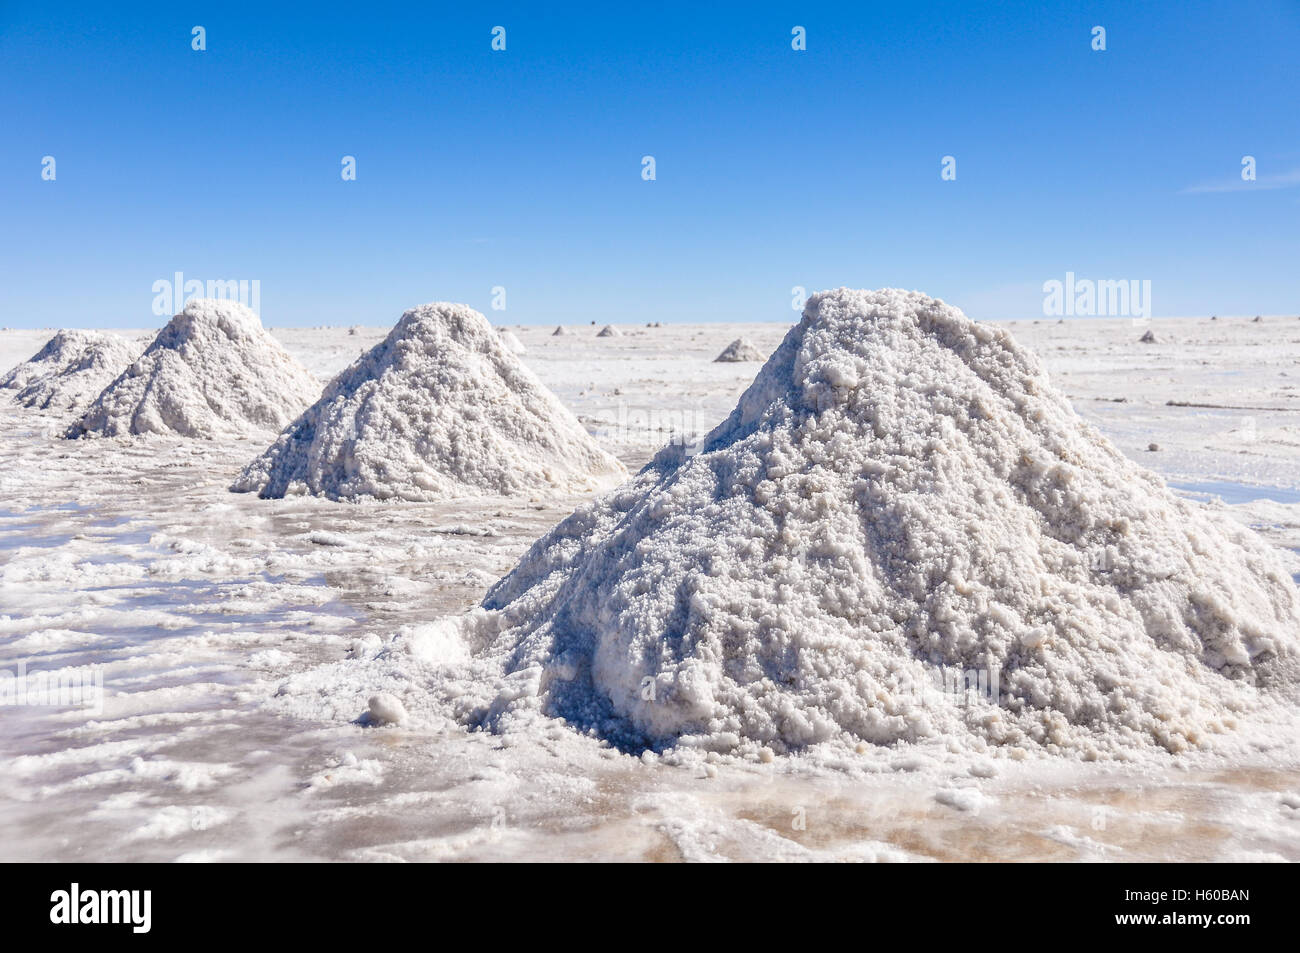 Piles of salt in Salar de Uyuni, the biggest salt flat in the world, Bolivia - Stock Image